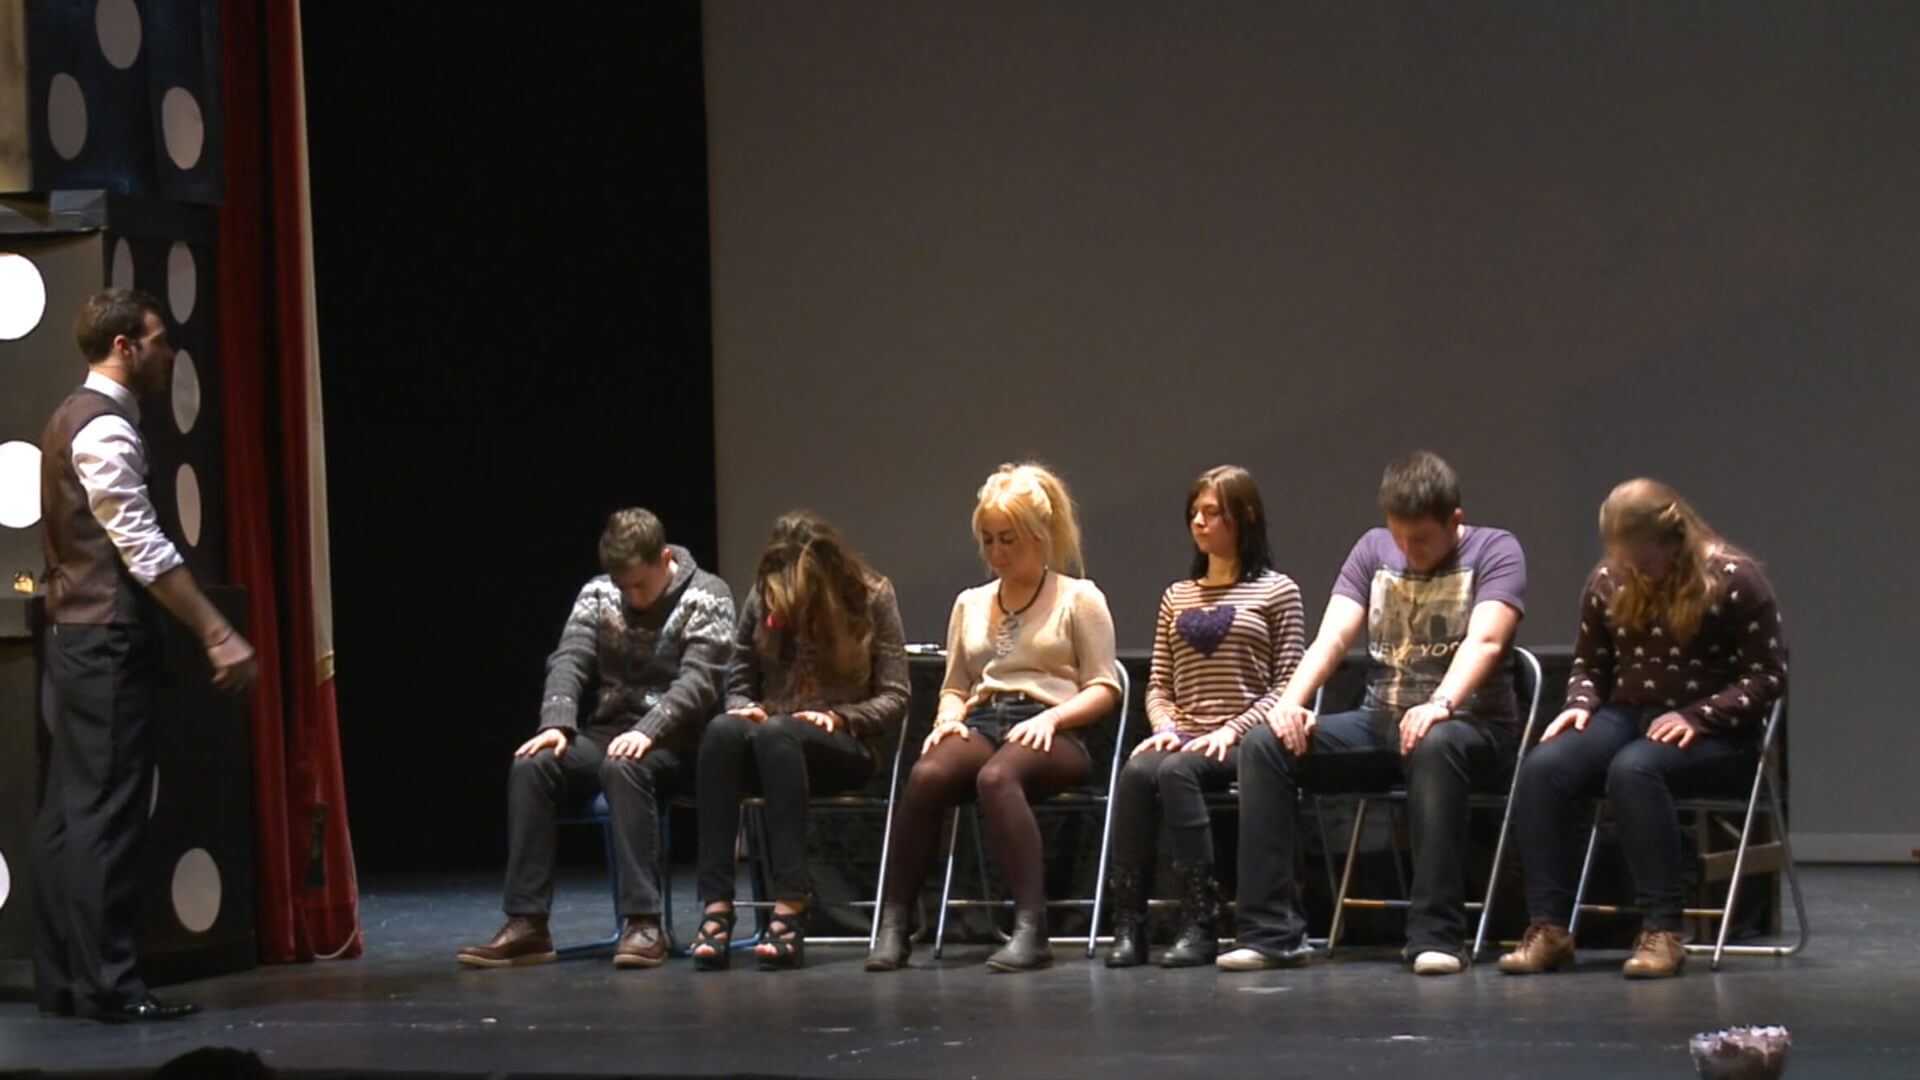 Aaron performing hypnosis on stage entertainment